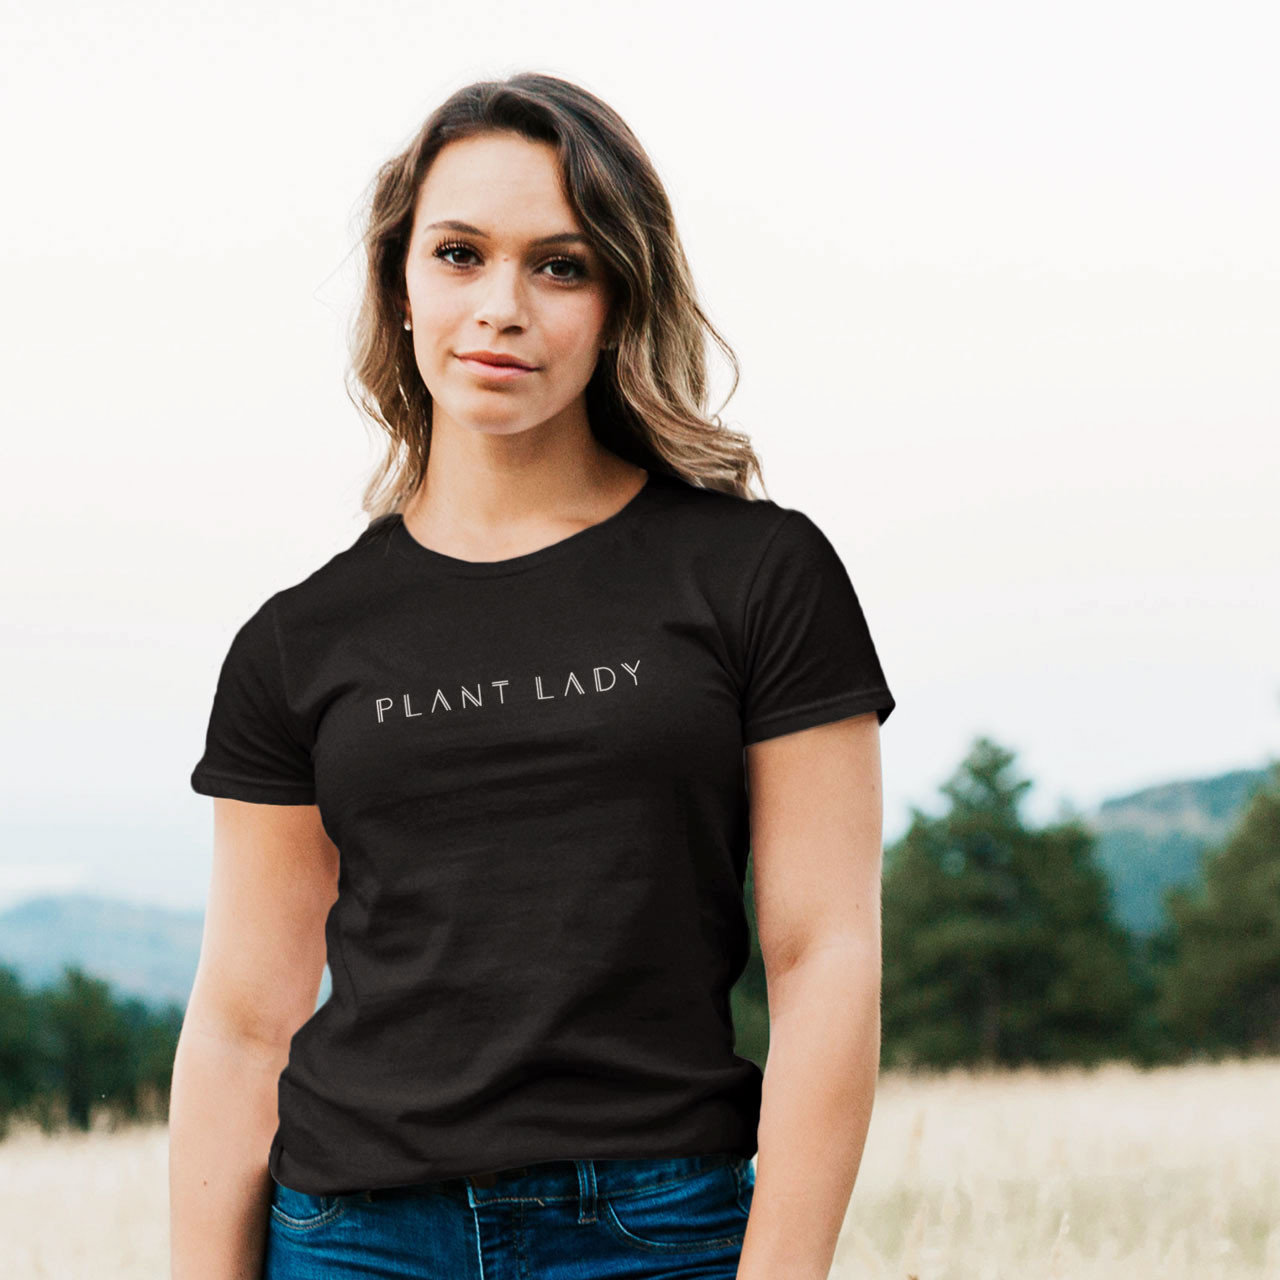 PLANT LADY Cotton T-Shirt (White on Black) from The Printed Home